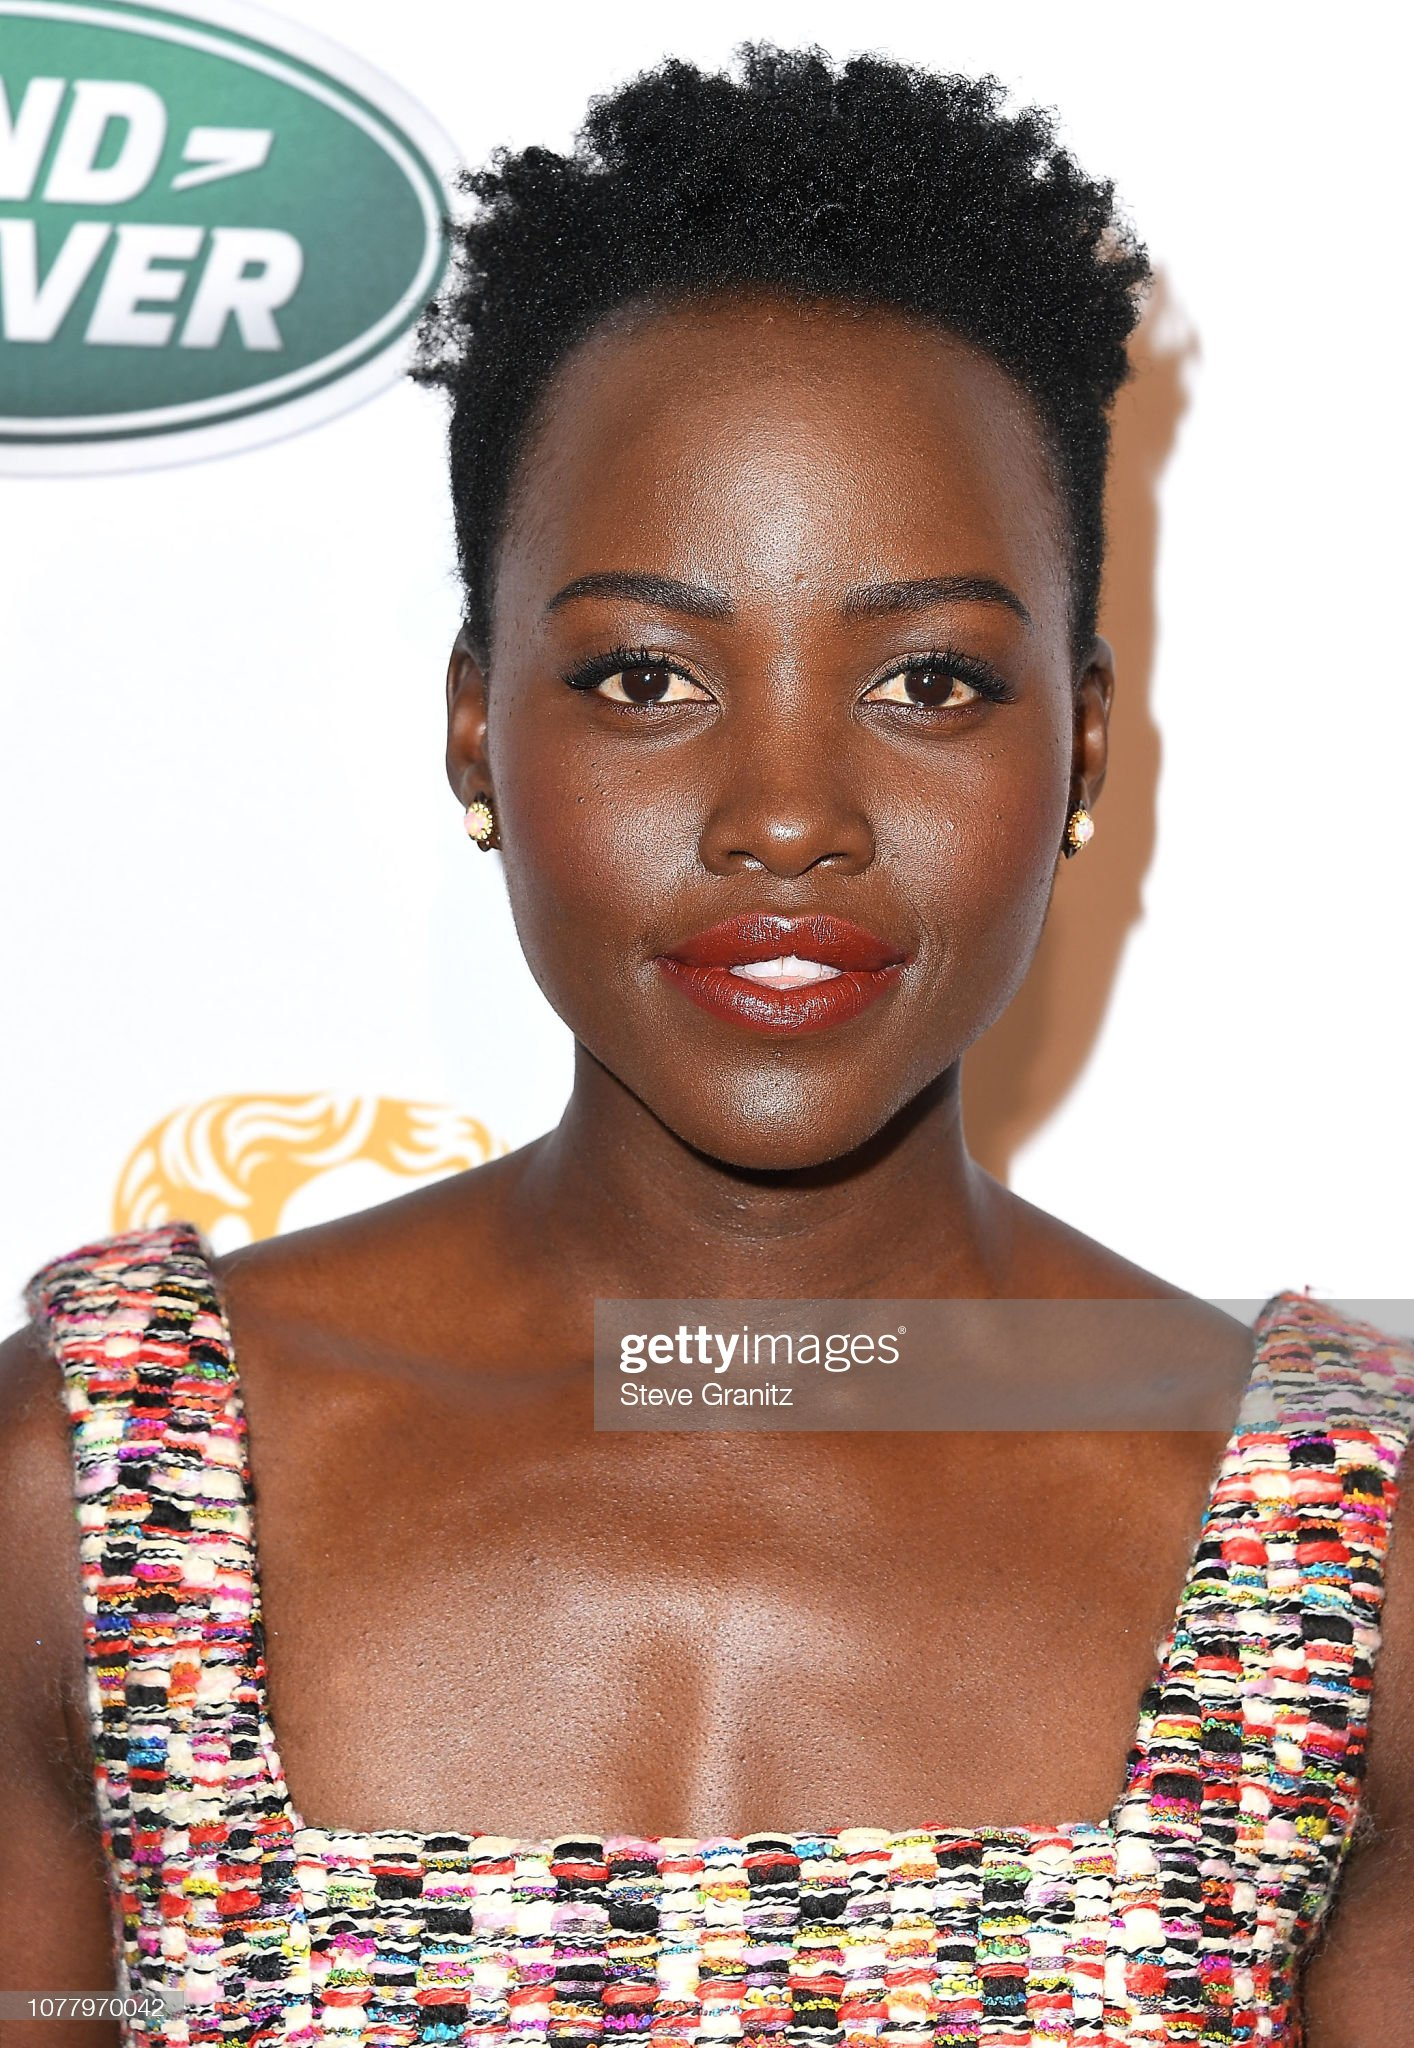 ¿Cuánto mide Lupita Nyongo? - Altura - Real height Lupita-nyongo-arrives-at-the-the-bafta-los-angeles-tea-party-at-four-picture-id1077970042?s=2048x2048